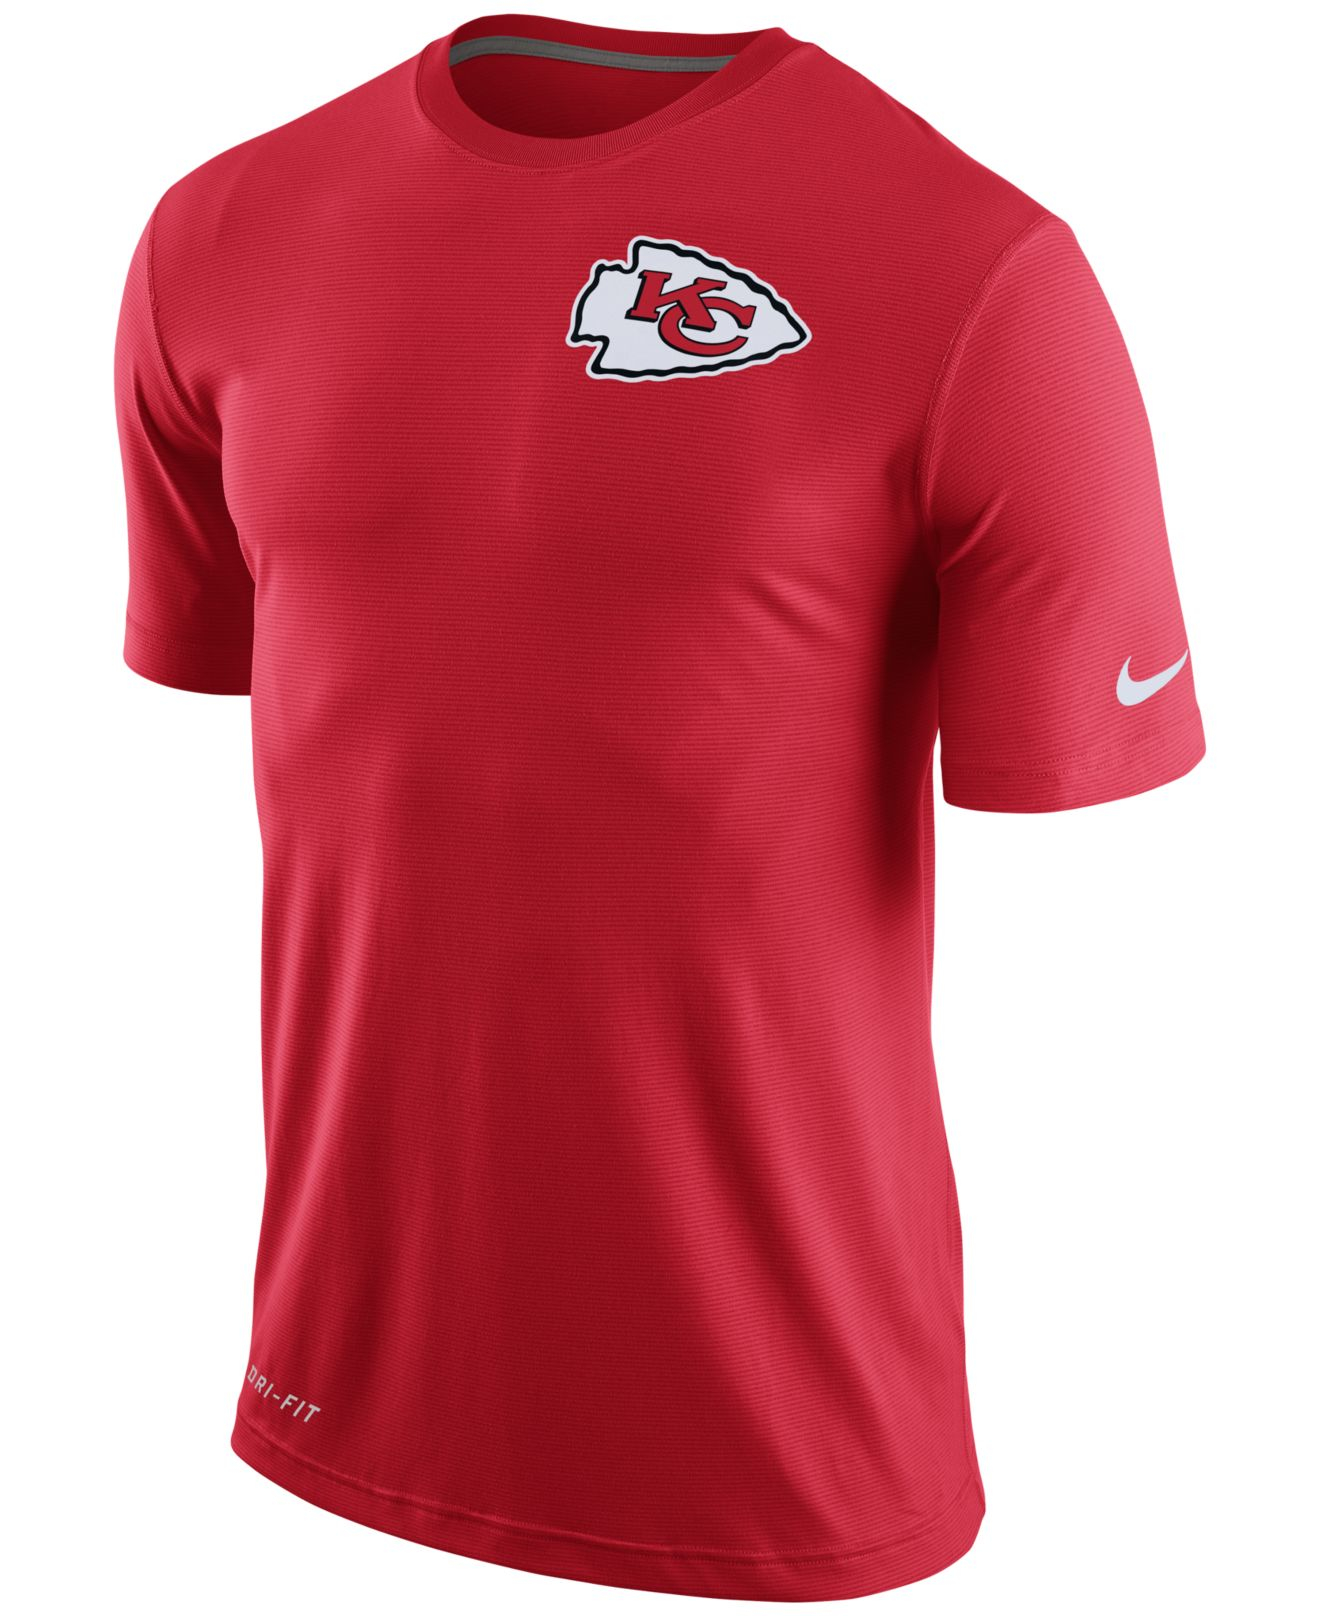 Nike men 39 s kansas city chiefs dri fit touch t shirt in red for Kansas city chiefs tee shirts